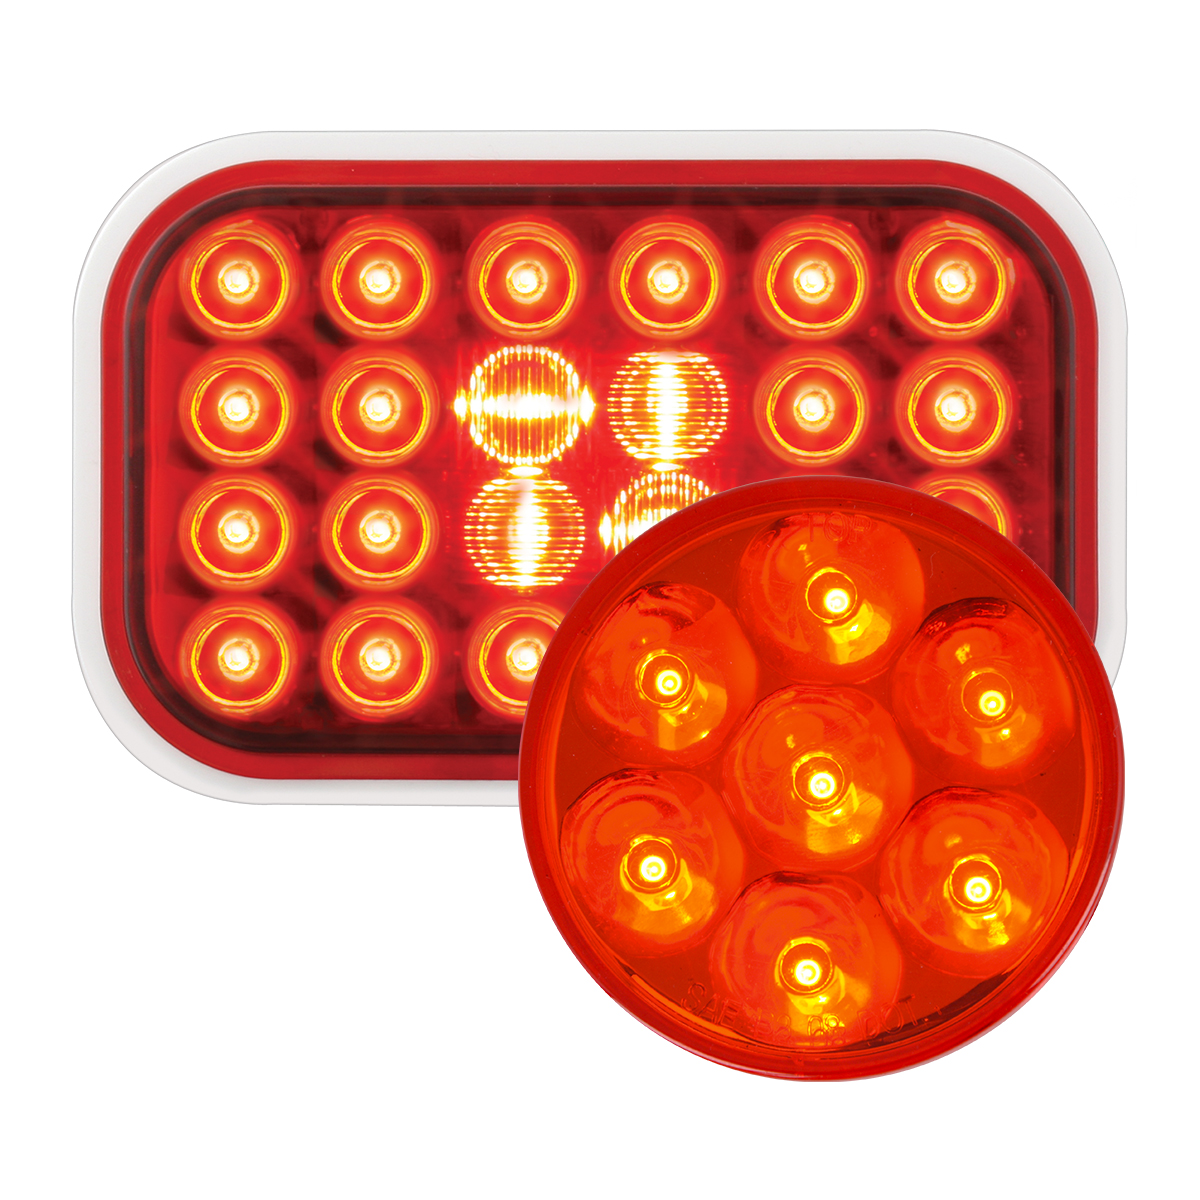 #77182/#76582 Pearl LED Flat - Red/Red